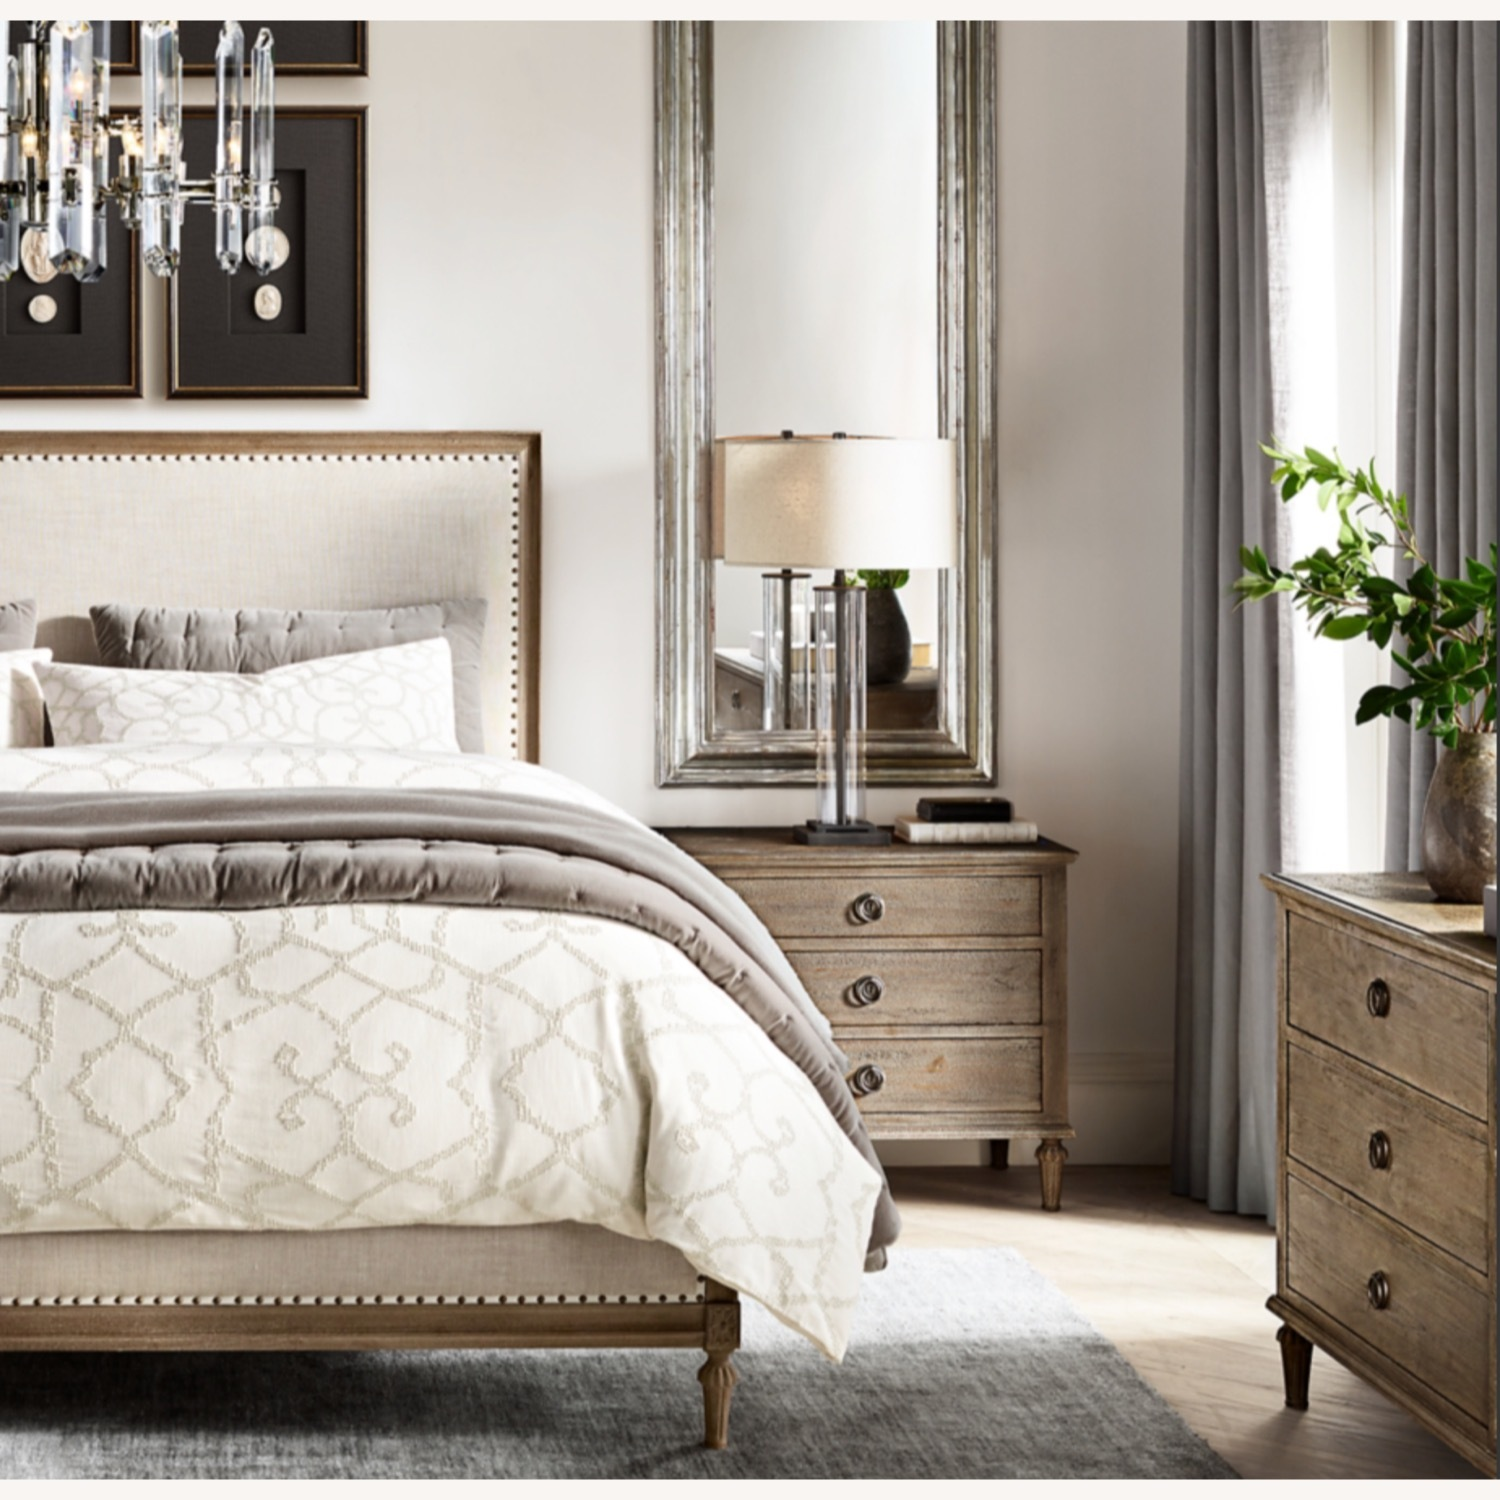 Restoration Hardware Maison Fabric Queen Bed - image-2